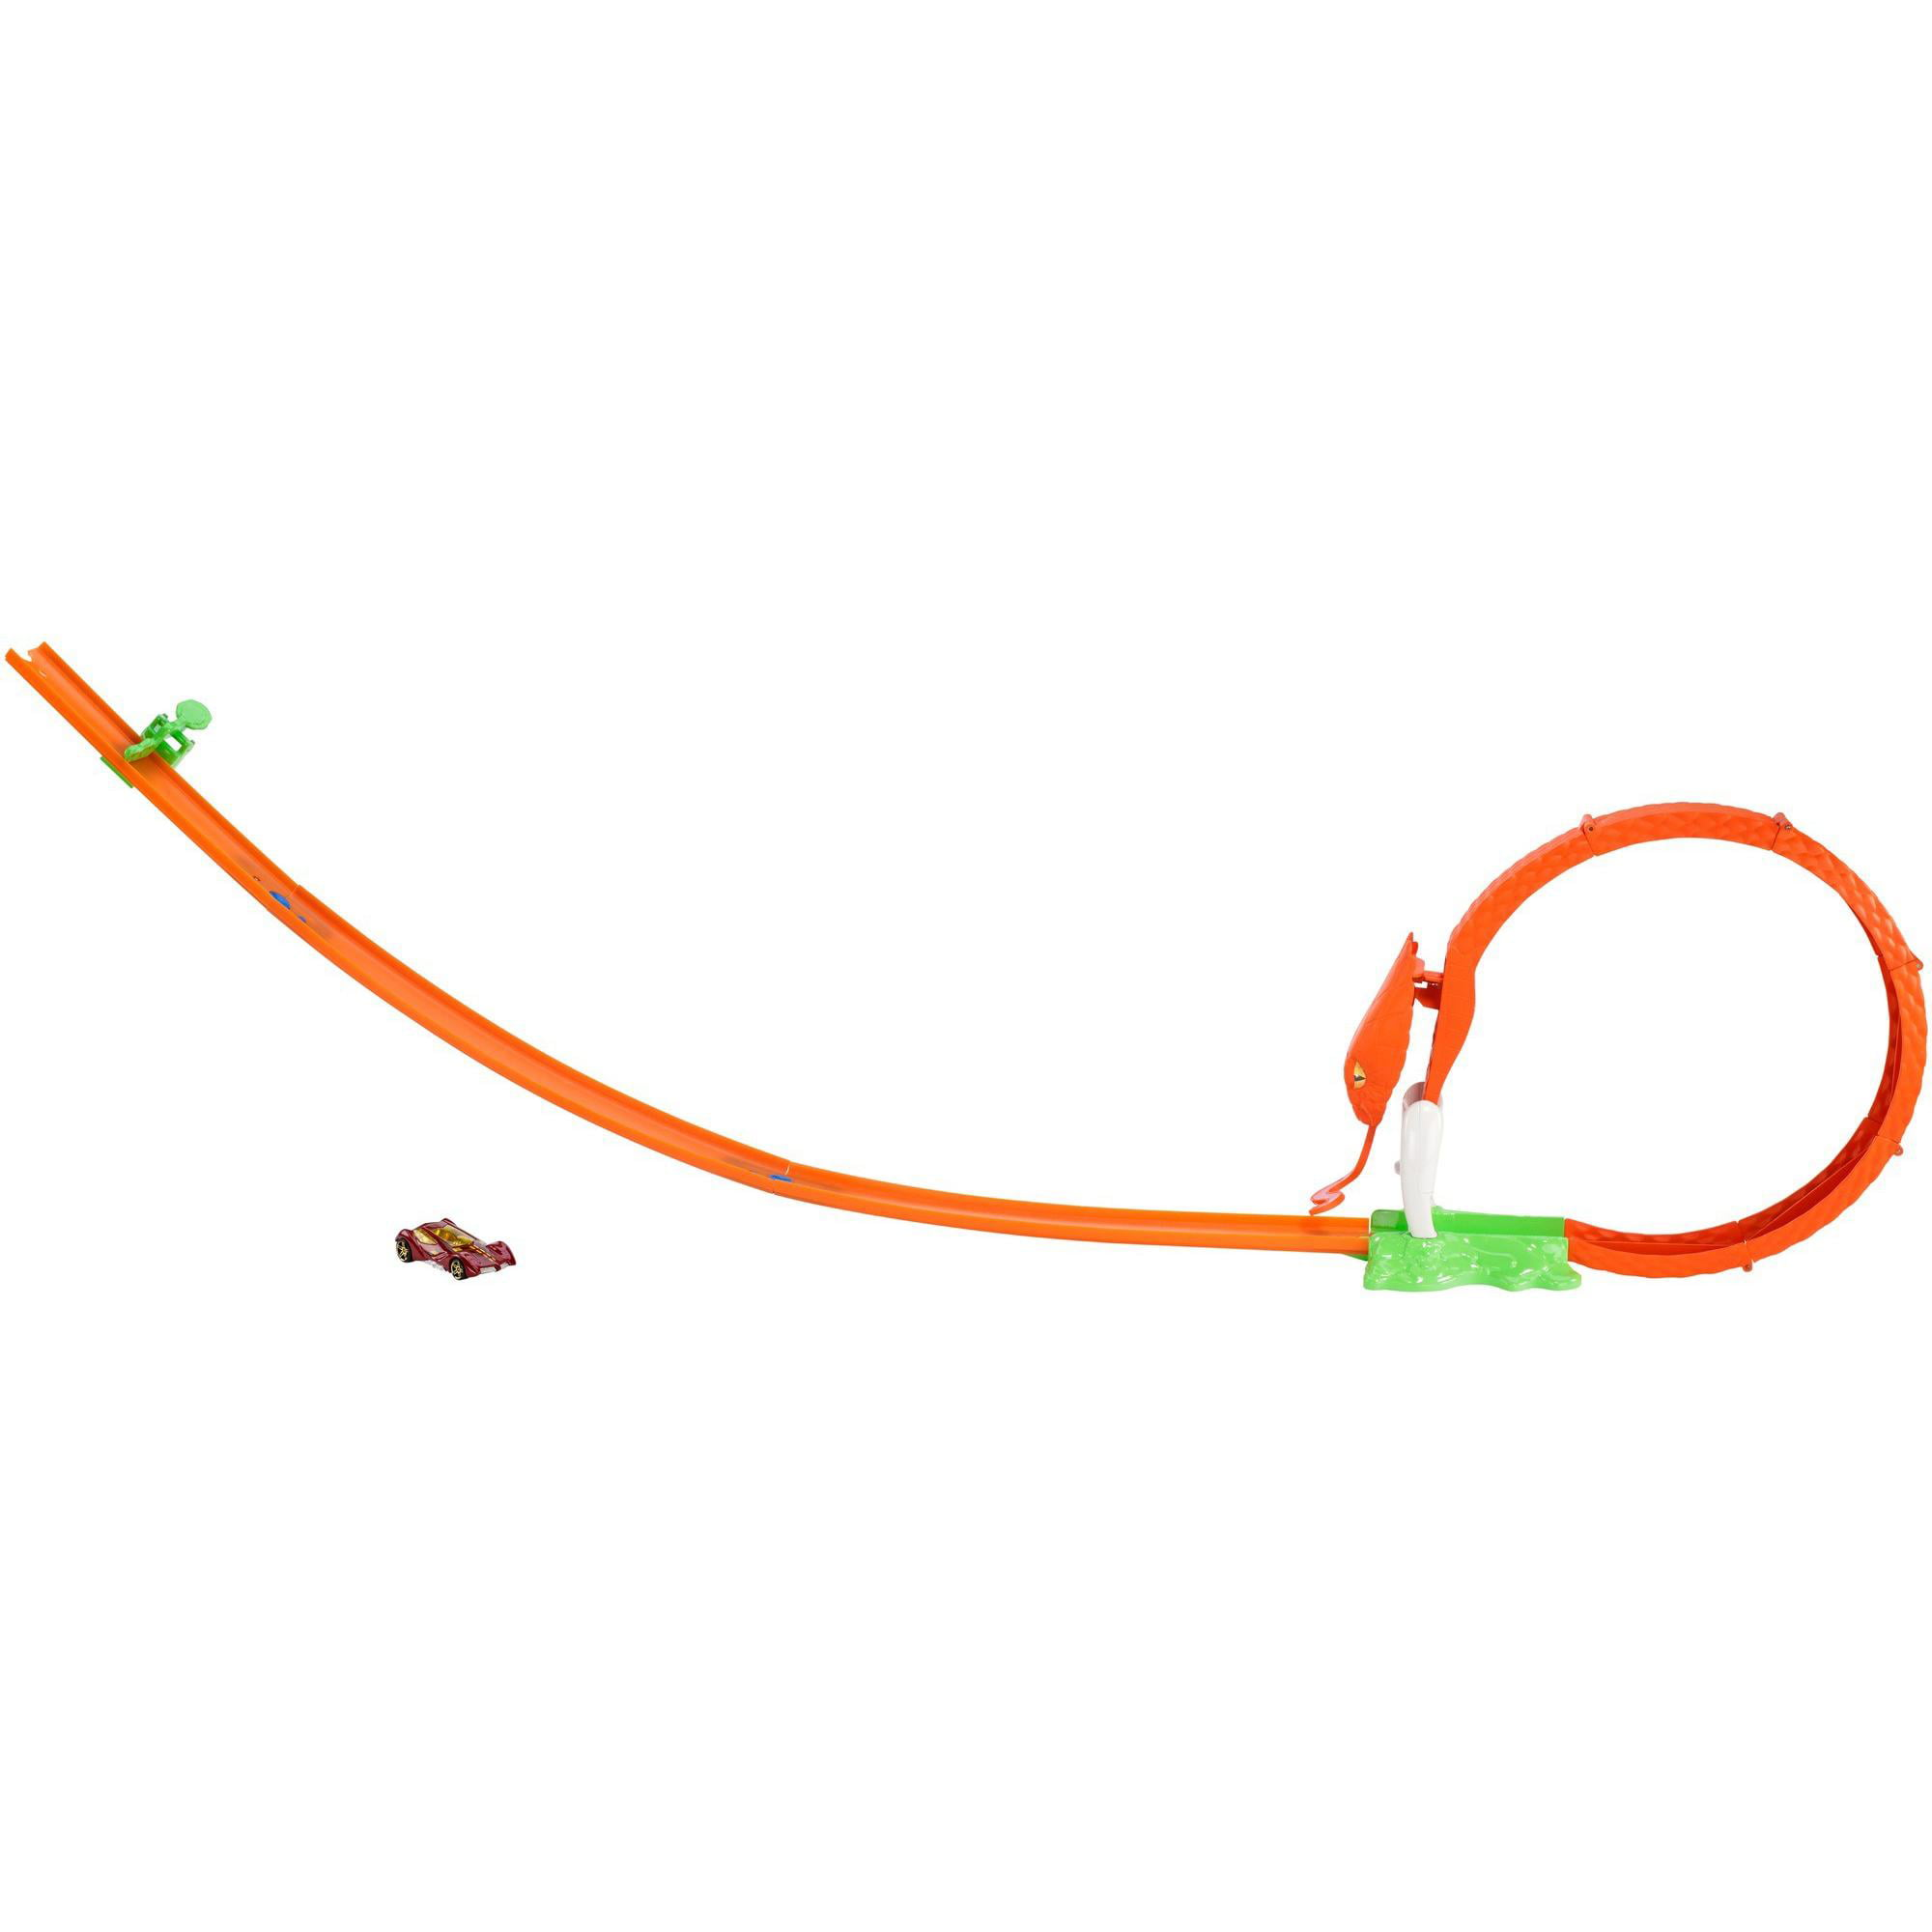 Hot Wheels Cobra Coil Trackset by Mattel